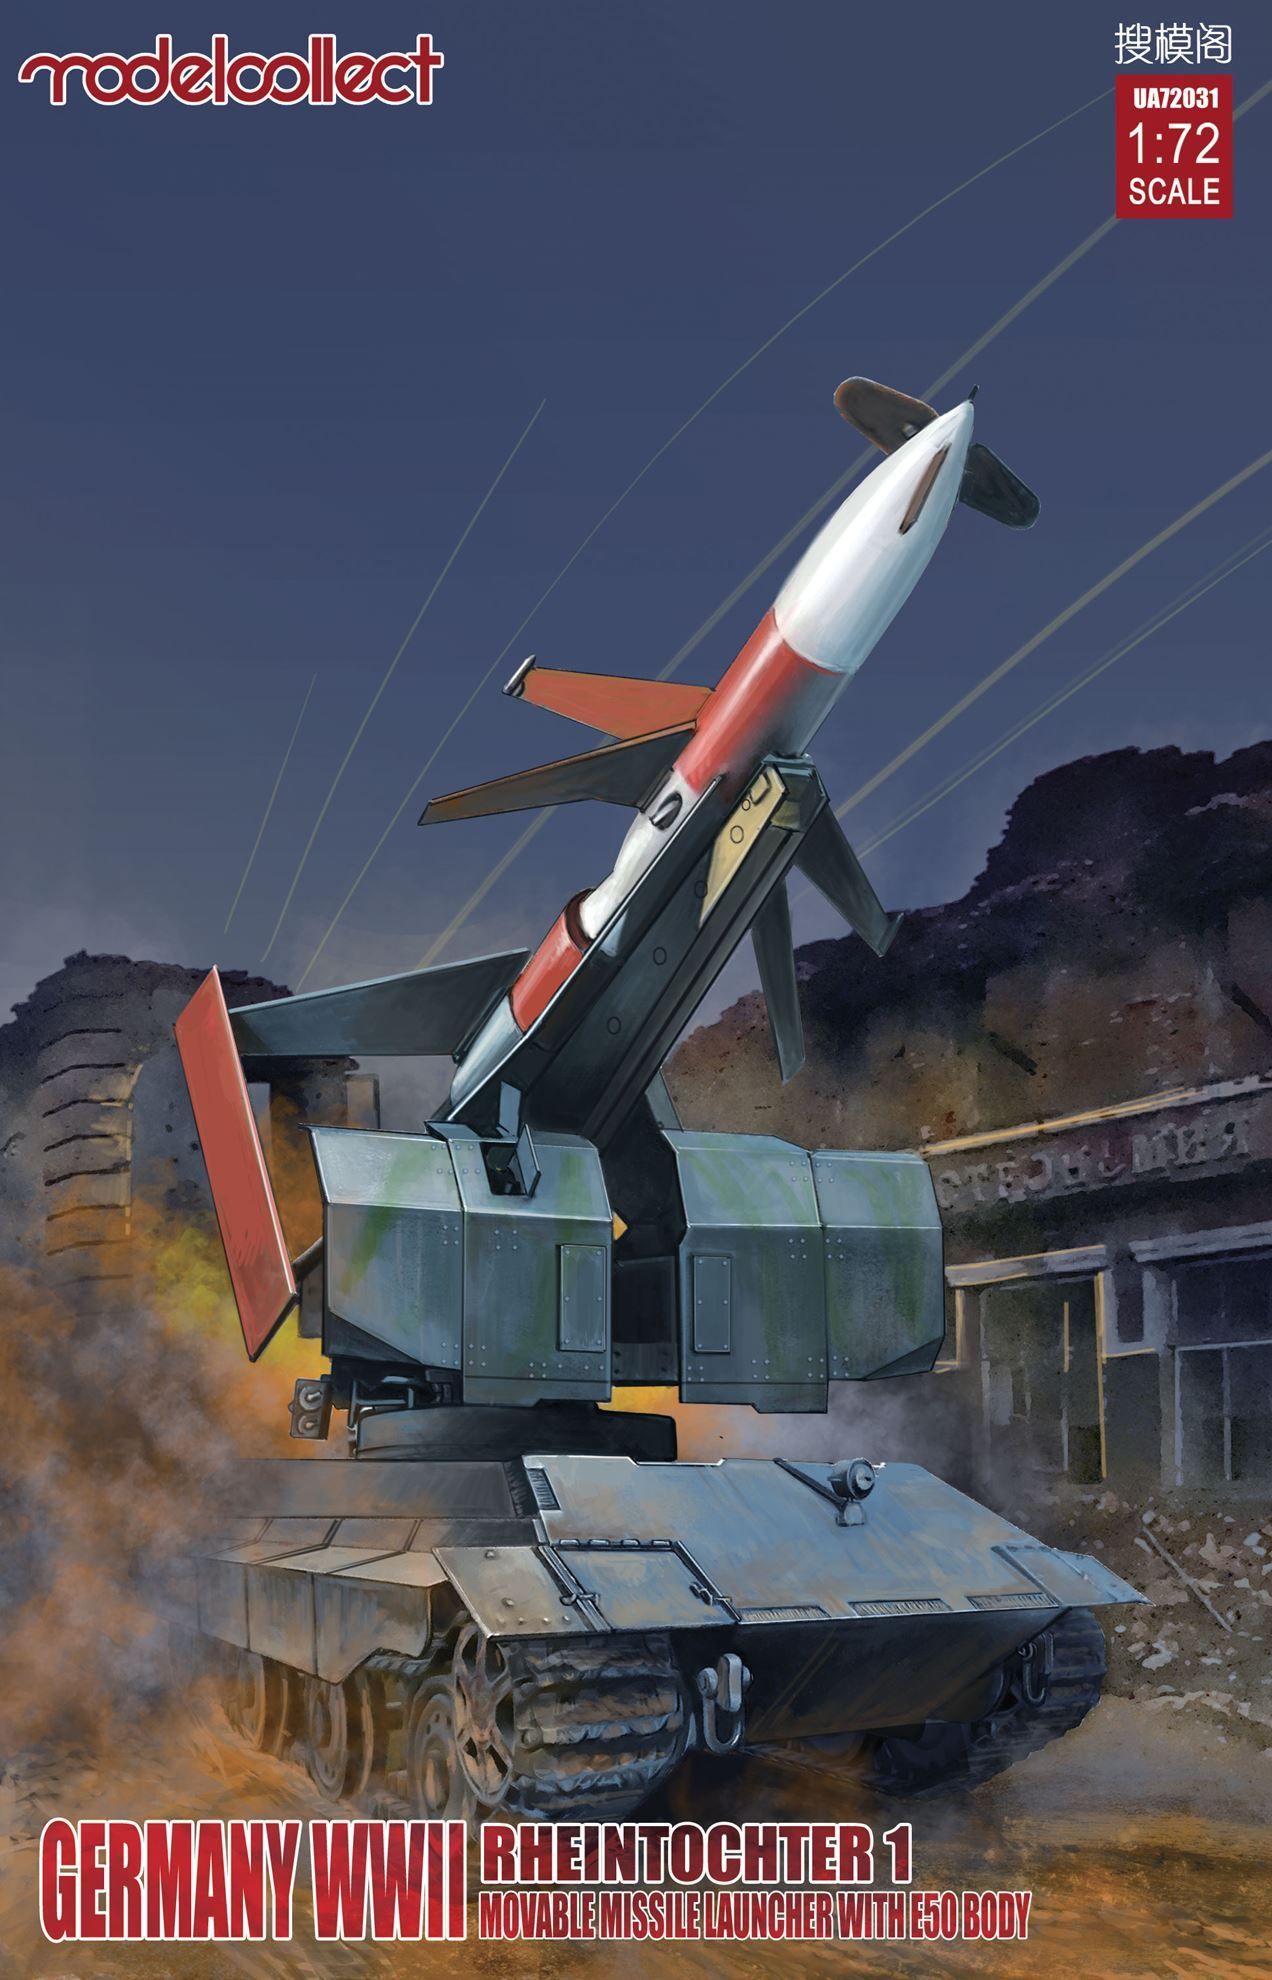 ModelCollect Germany Rheintochter 1 movable Missile launcher with E50 body